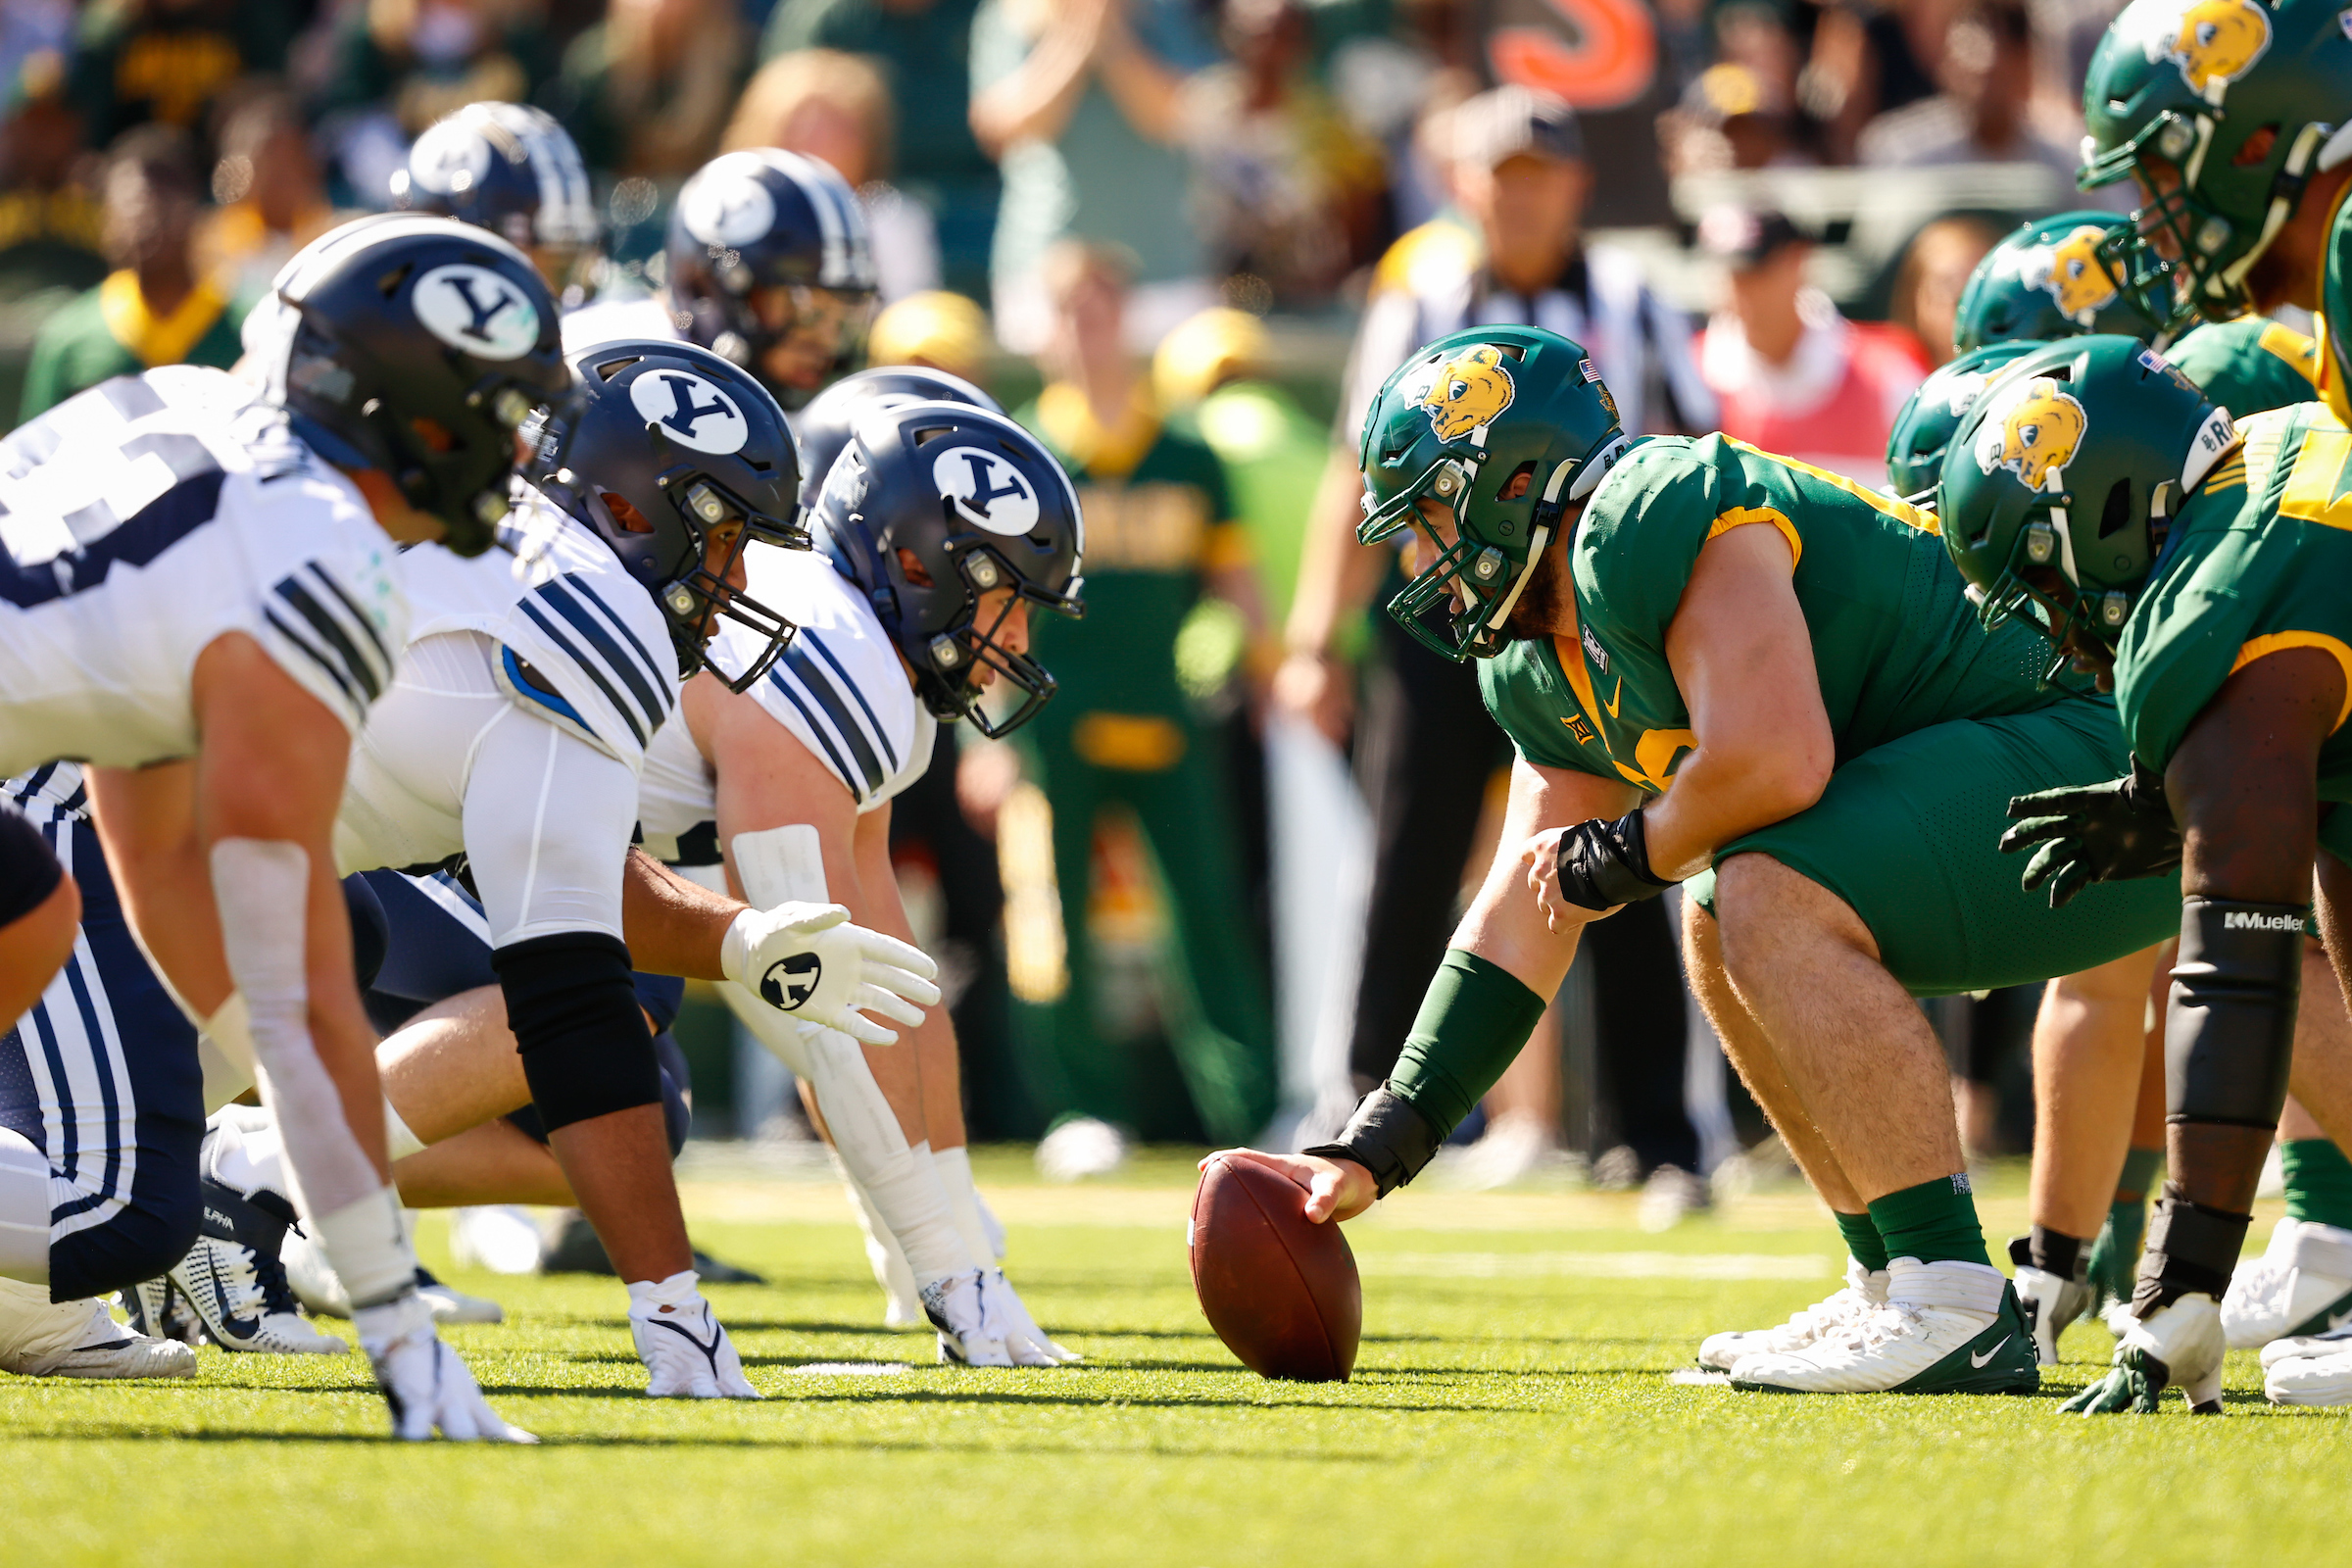 BYU defensive linemen prepare for a snap during game against Baylor on Oct. 16, 2021, at McLane Stadium in Waco, Texas.